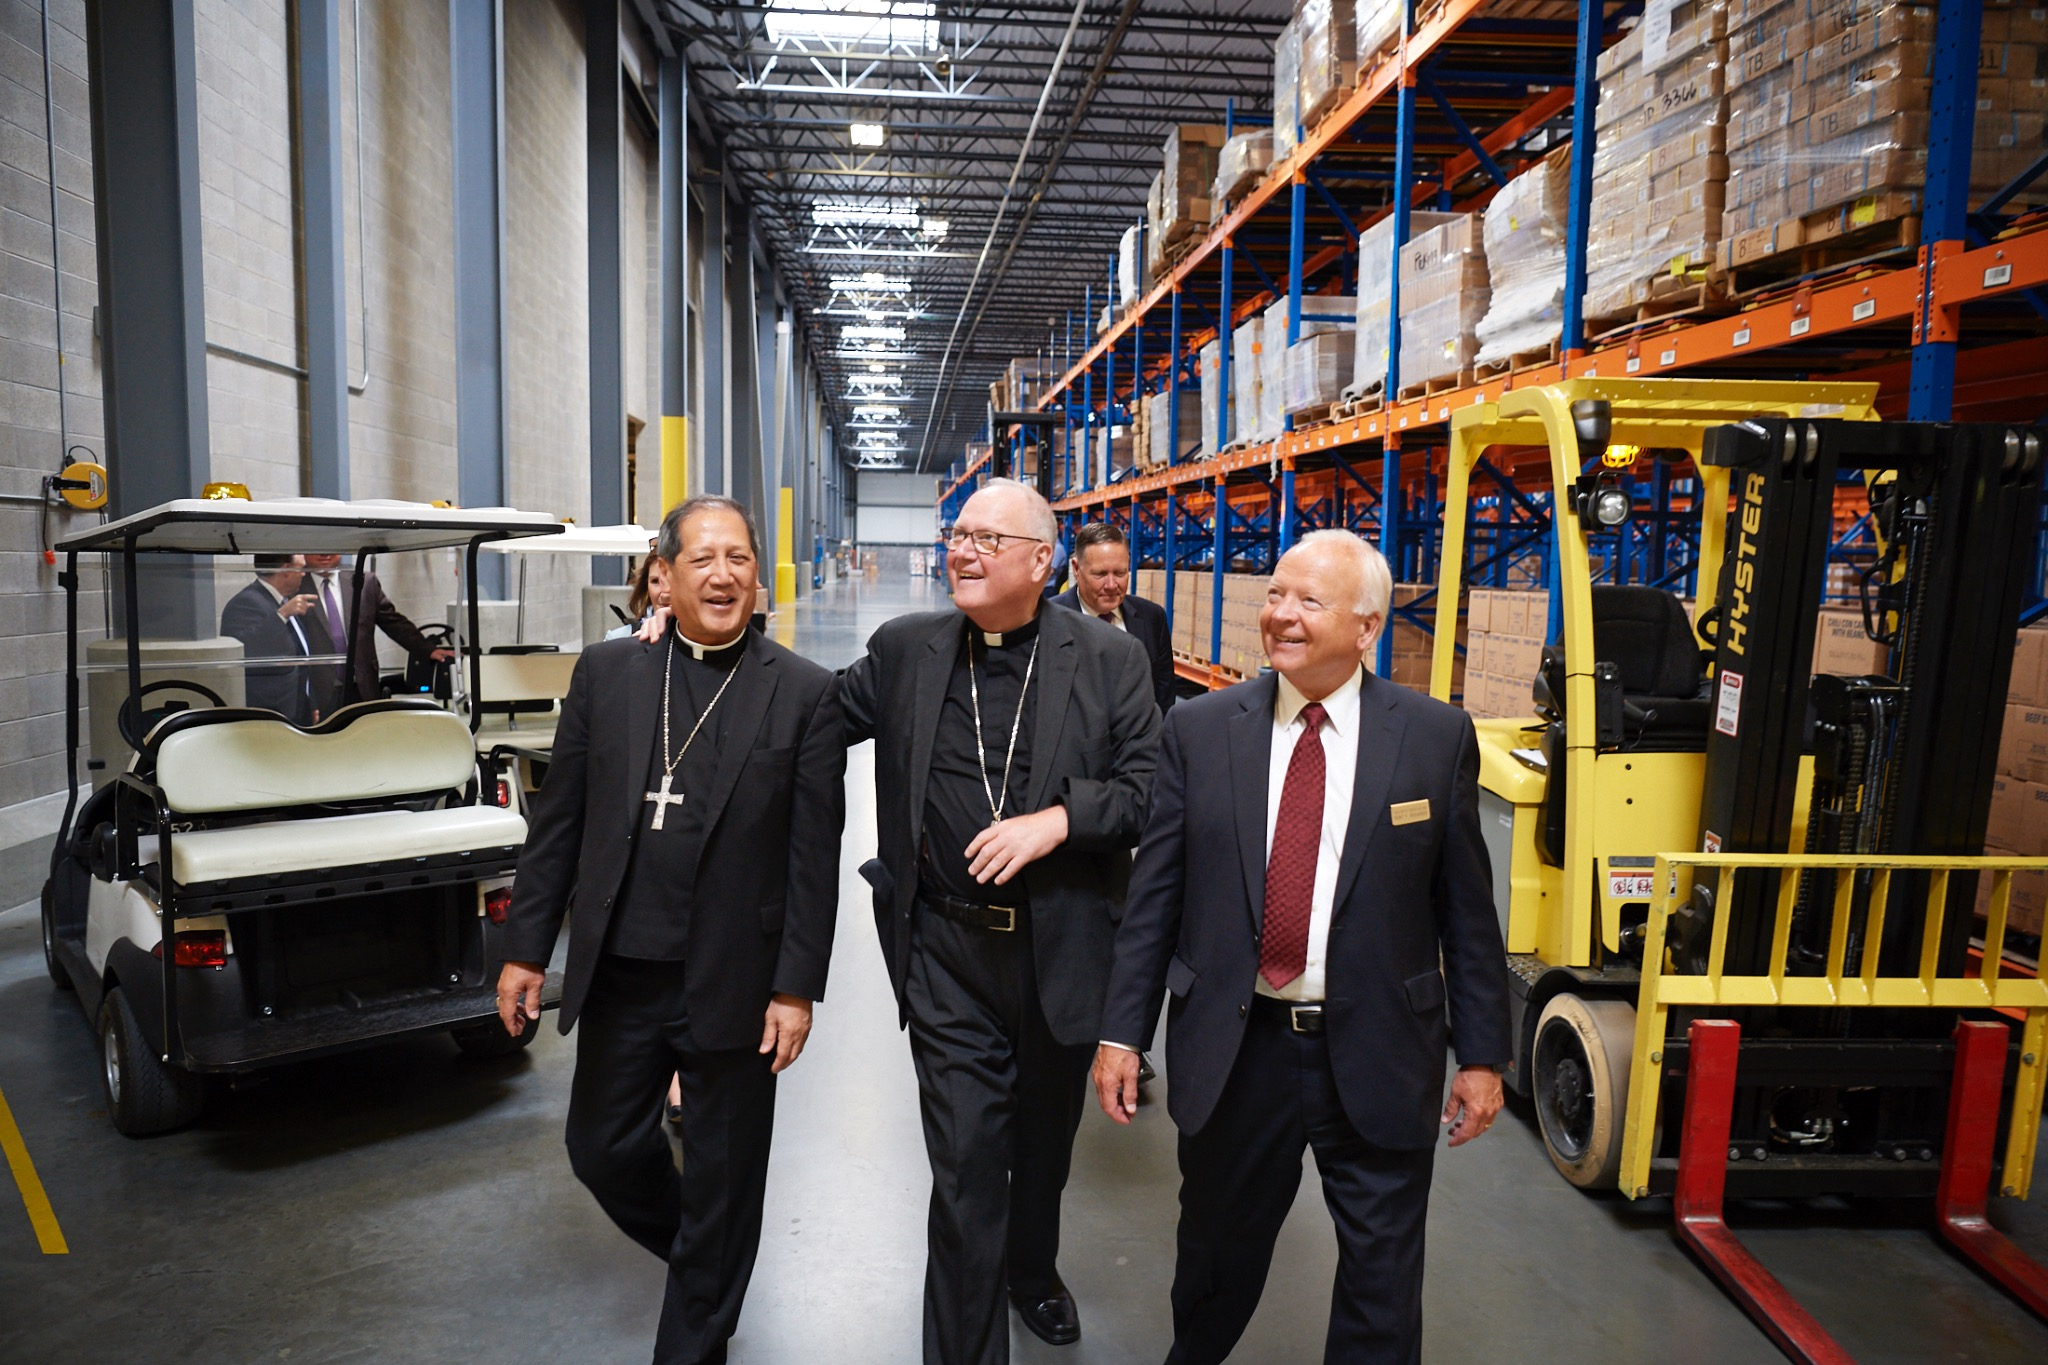 Elder Kent F. Richards, right, gives Catholic leaders Timothy Cardinal Dolan, center, and Bishop Oscar A. Solis a tour of the Bishops' Central Storehouse facilities in Salt Lake City, Utah, on Monday, July 1, 2019.